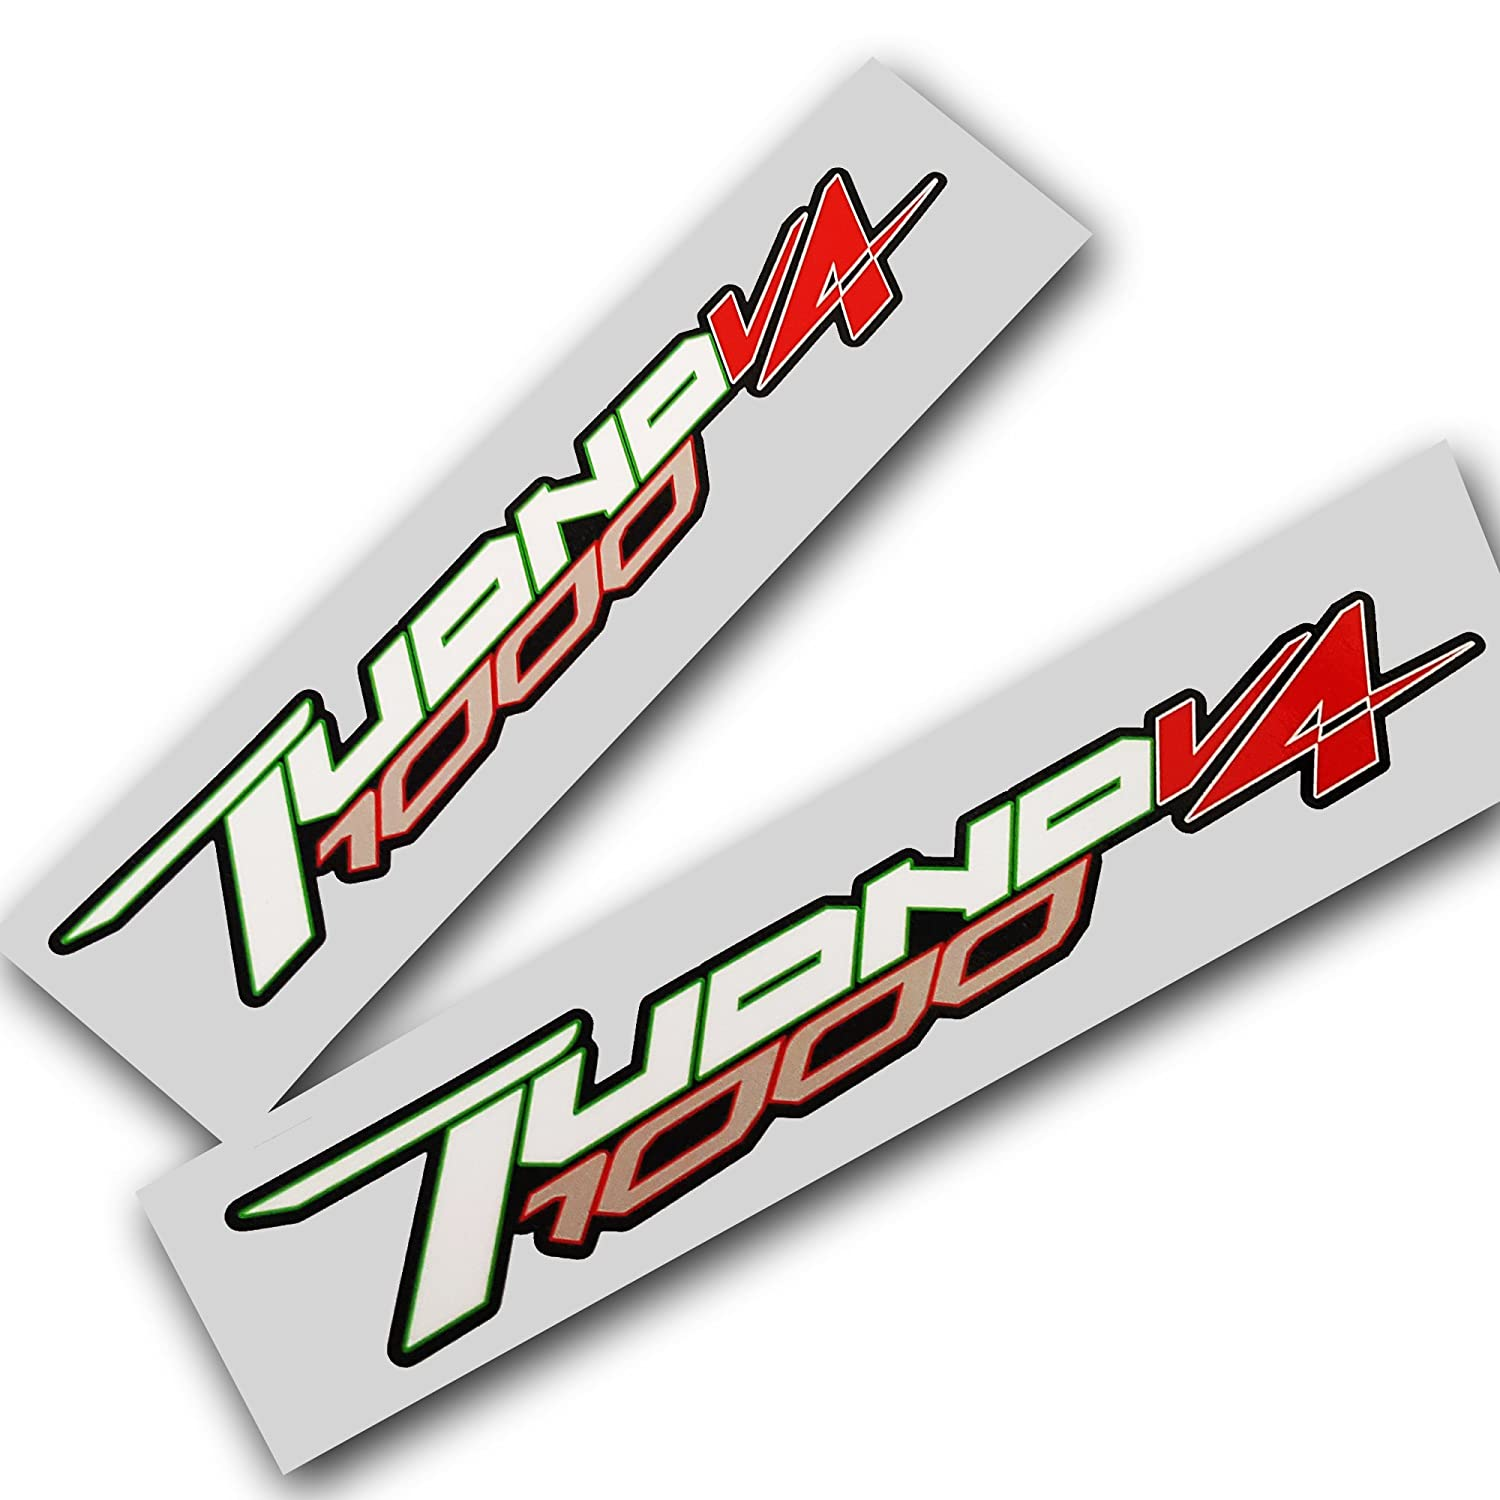 Aprilia tuono v4 1000 custom graphics decals stickers x 2 amazon co uk car motorbike